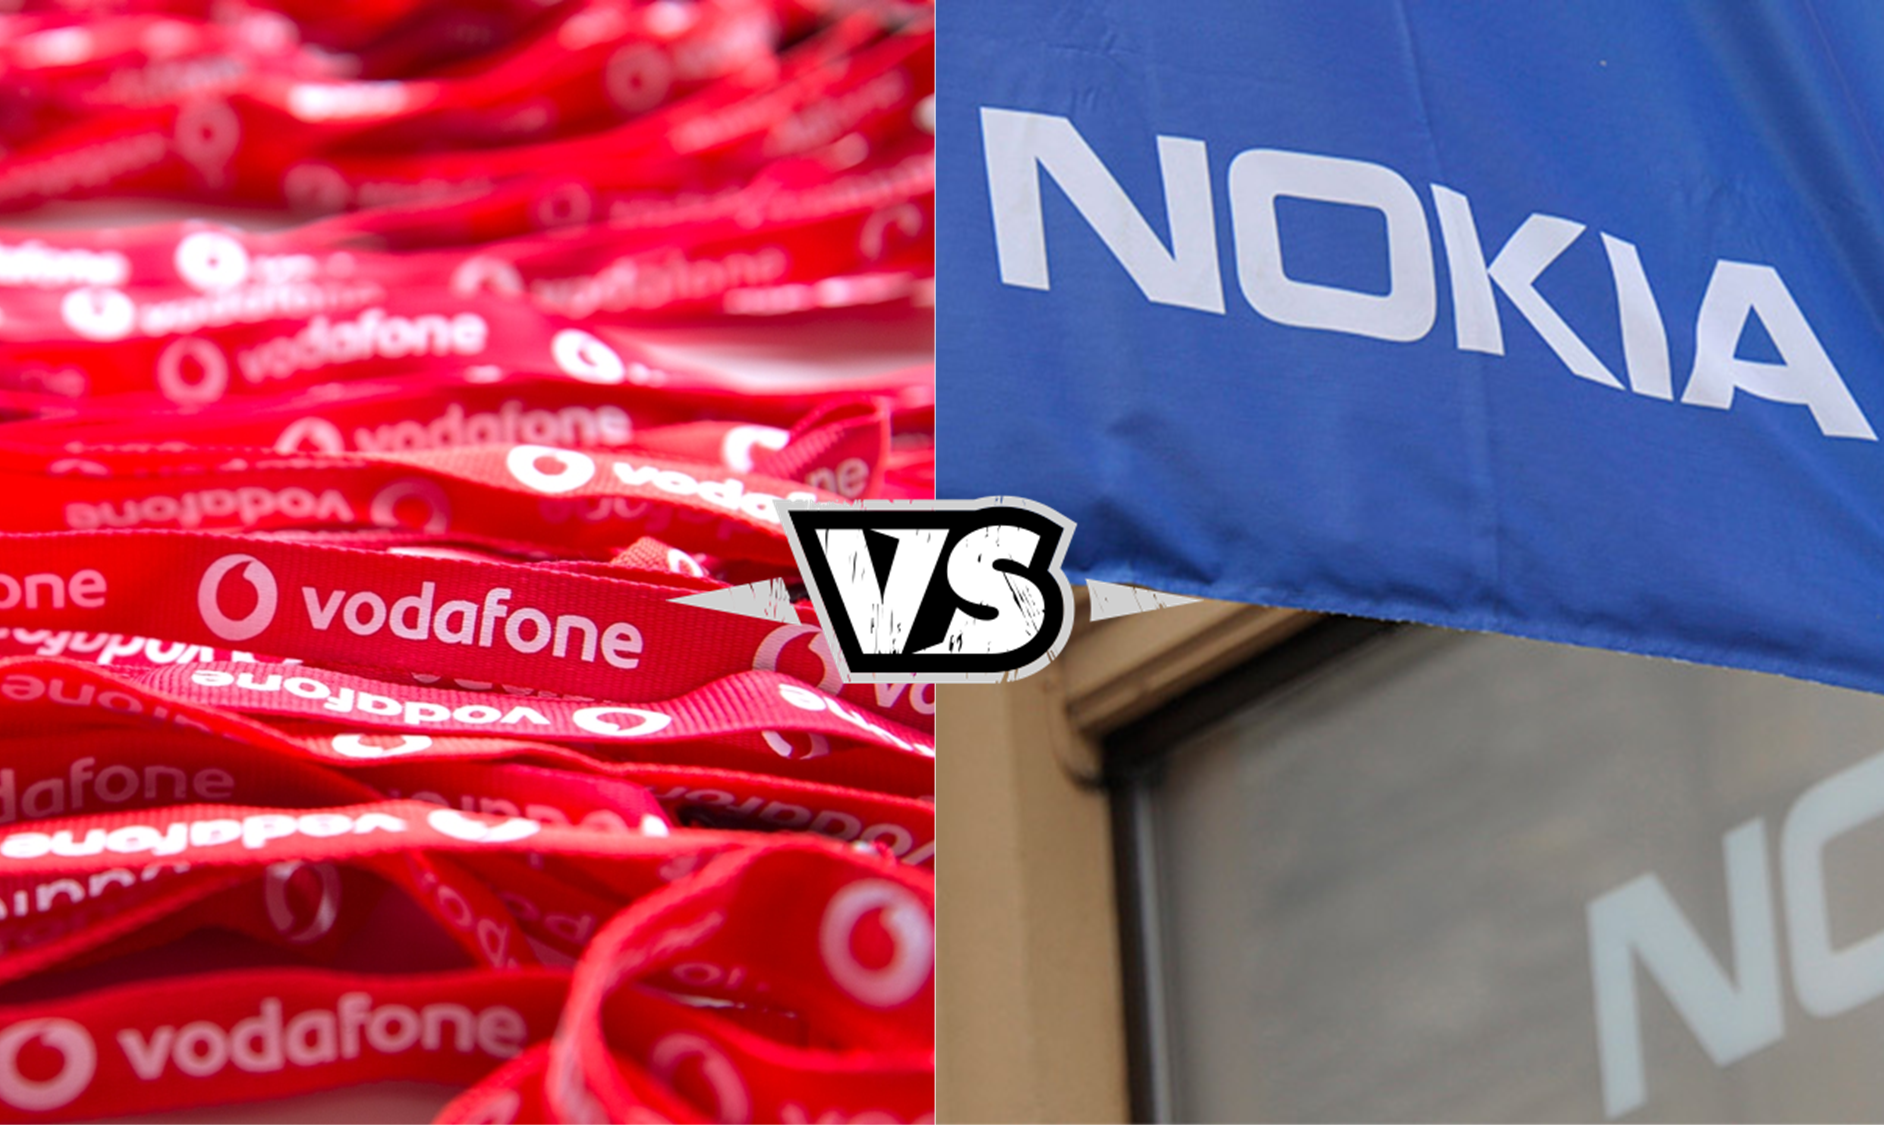 Vodafone Vs. Nokia: Which Stock Would You Keep? - Nokia Corporation (NYSE:NOK)